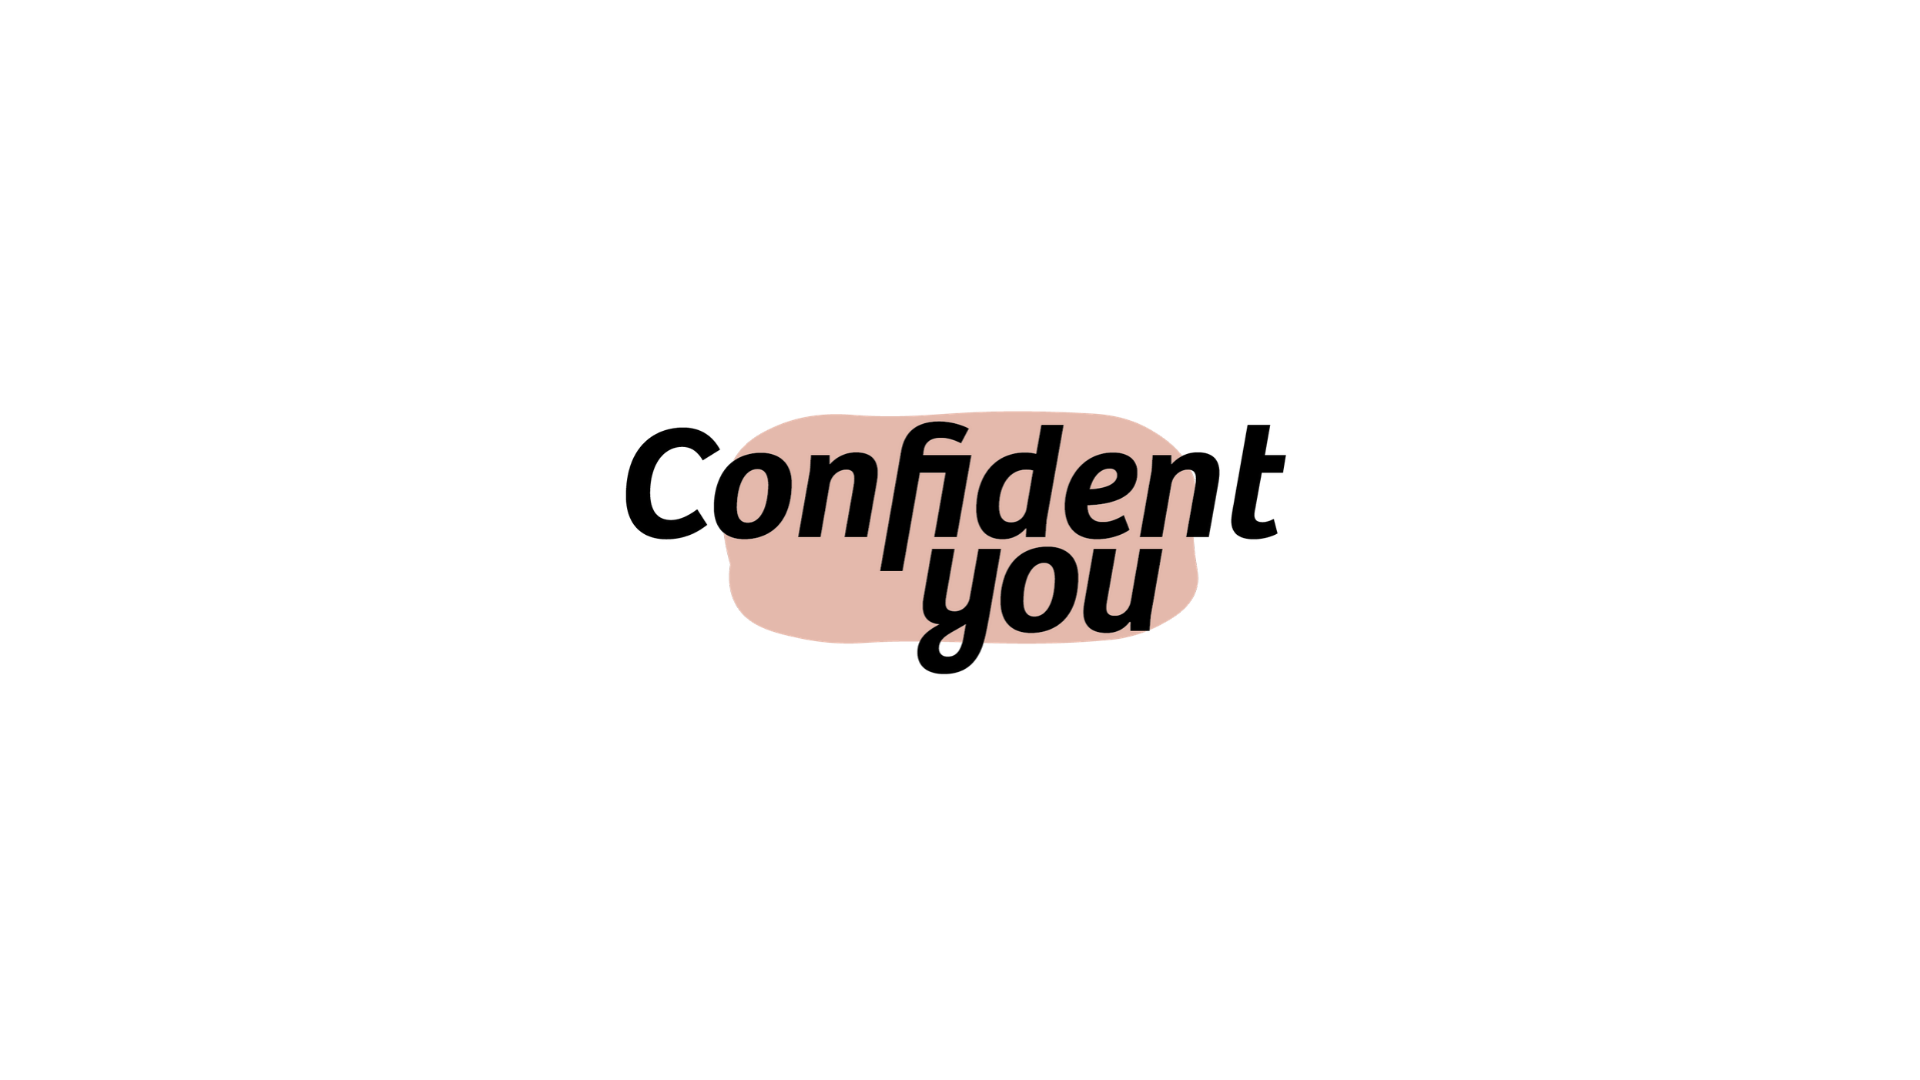 Mentoring - Build your confidence